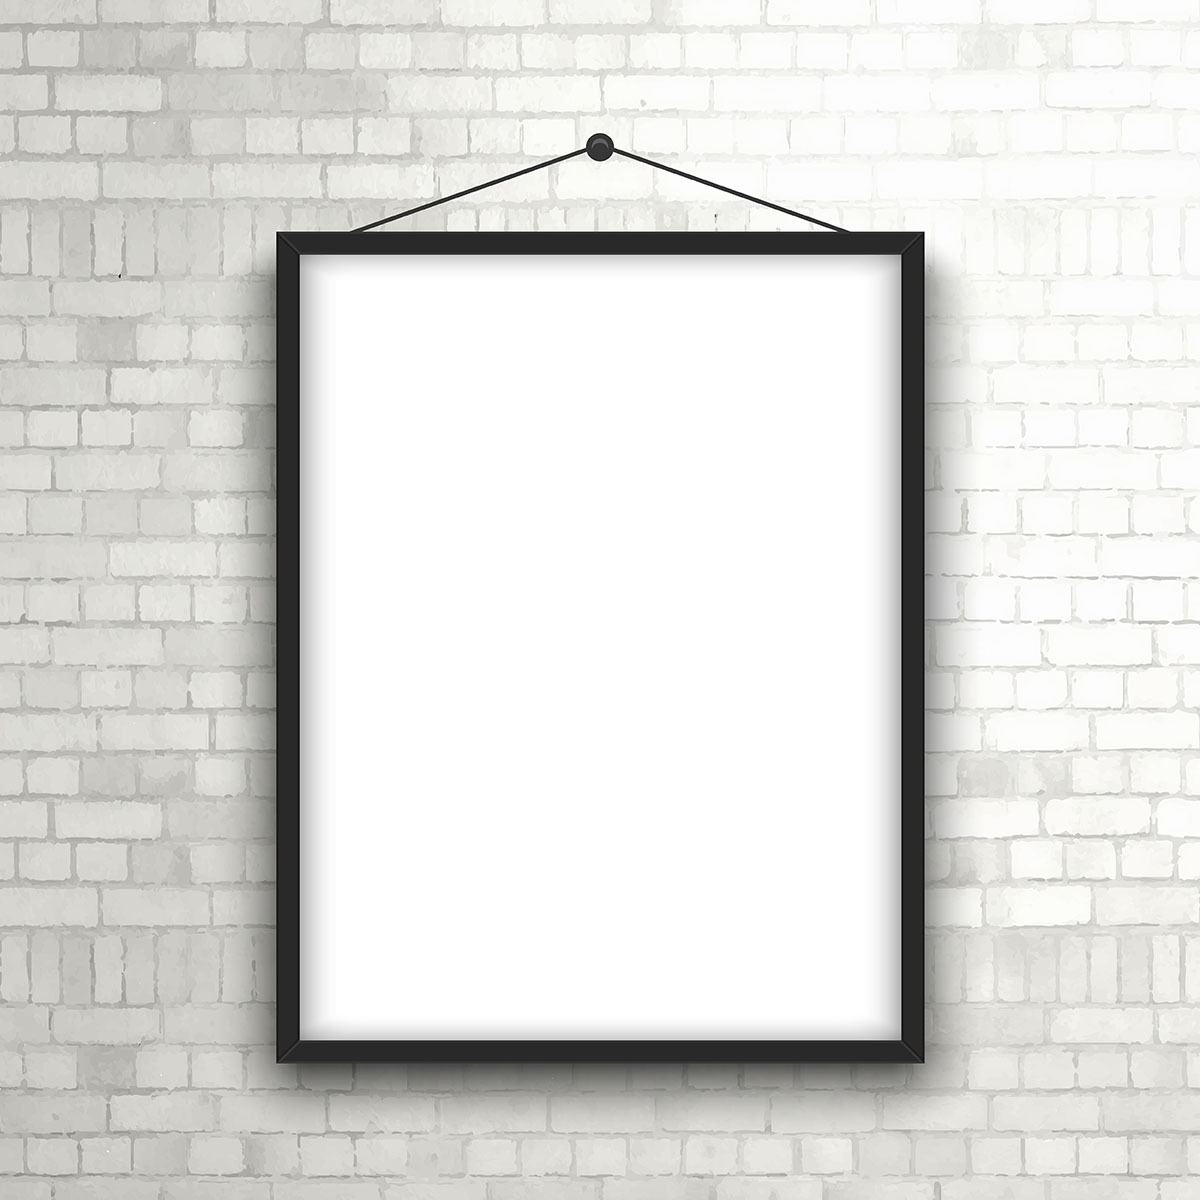 Pictures On The Wall Blank Picture Frame On Brick Wall Download Free Vector